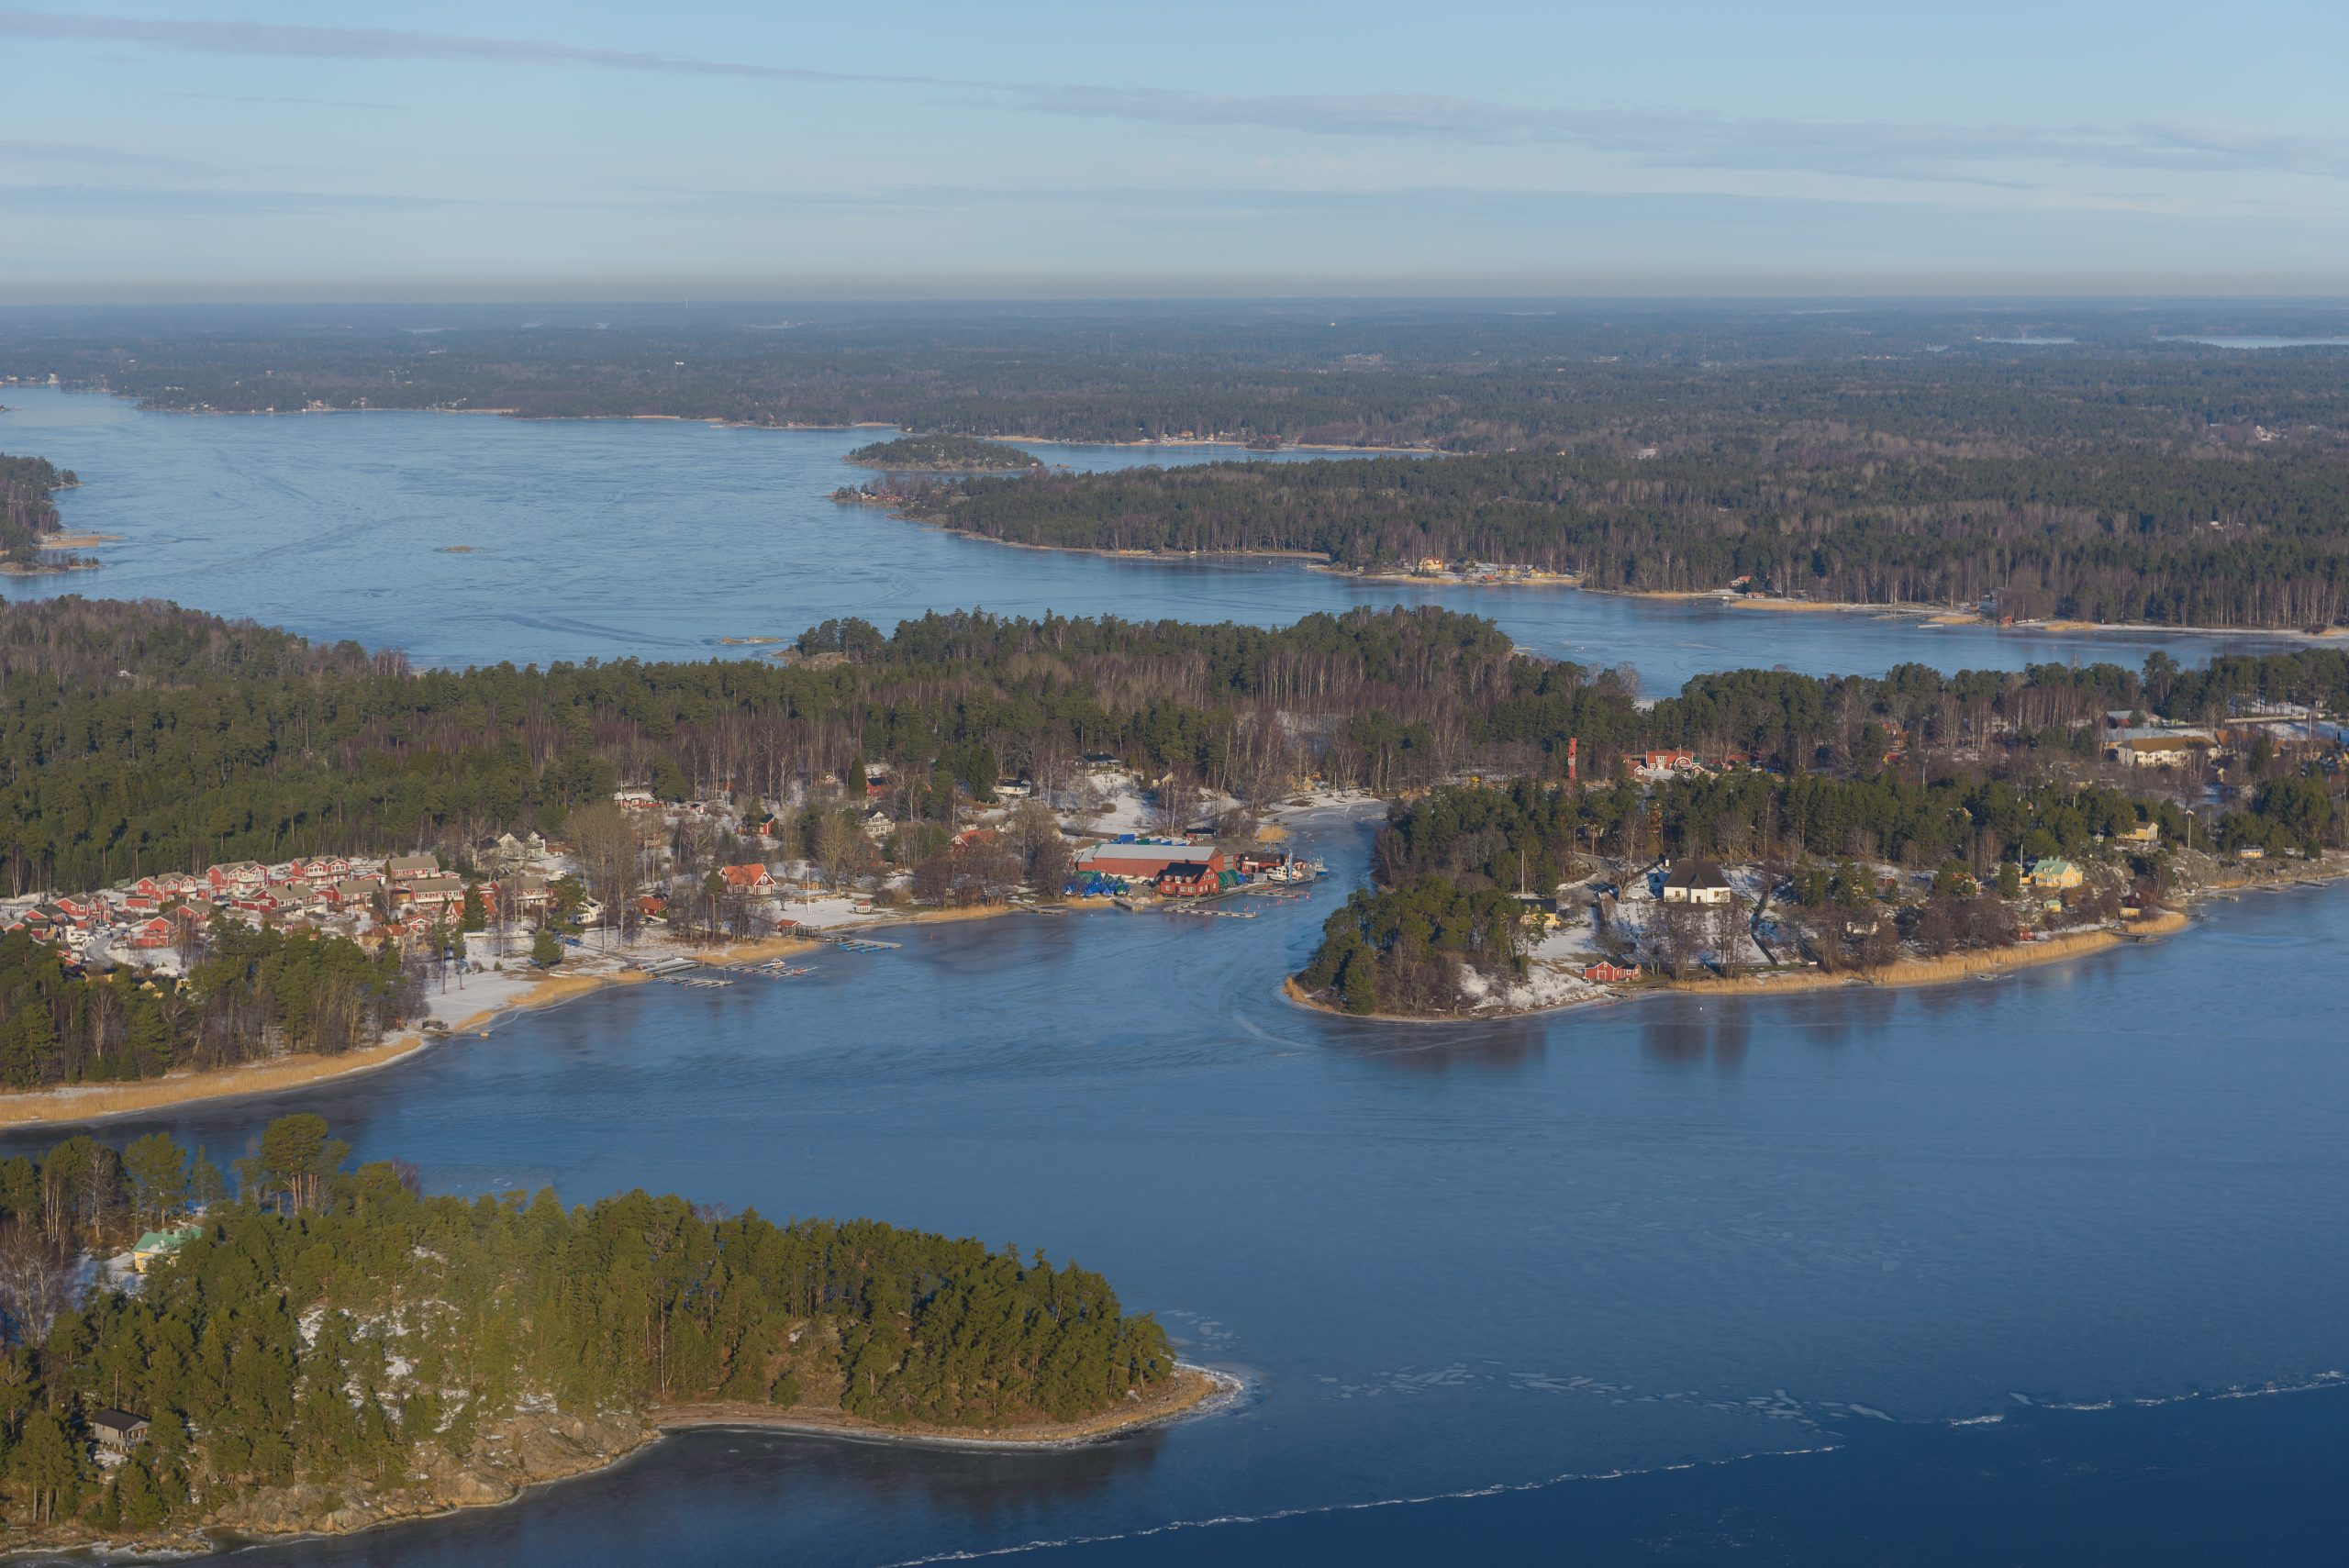 Sweden Travel : Sweden Country Profile, Travel Information, History, Facts, Geography, Demography